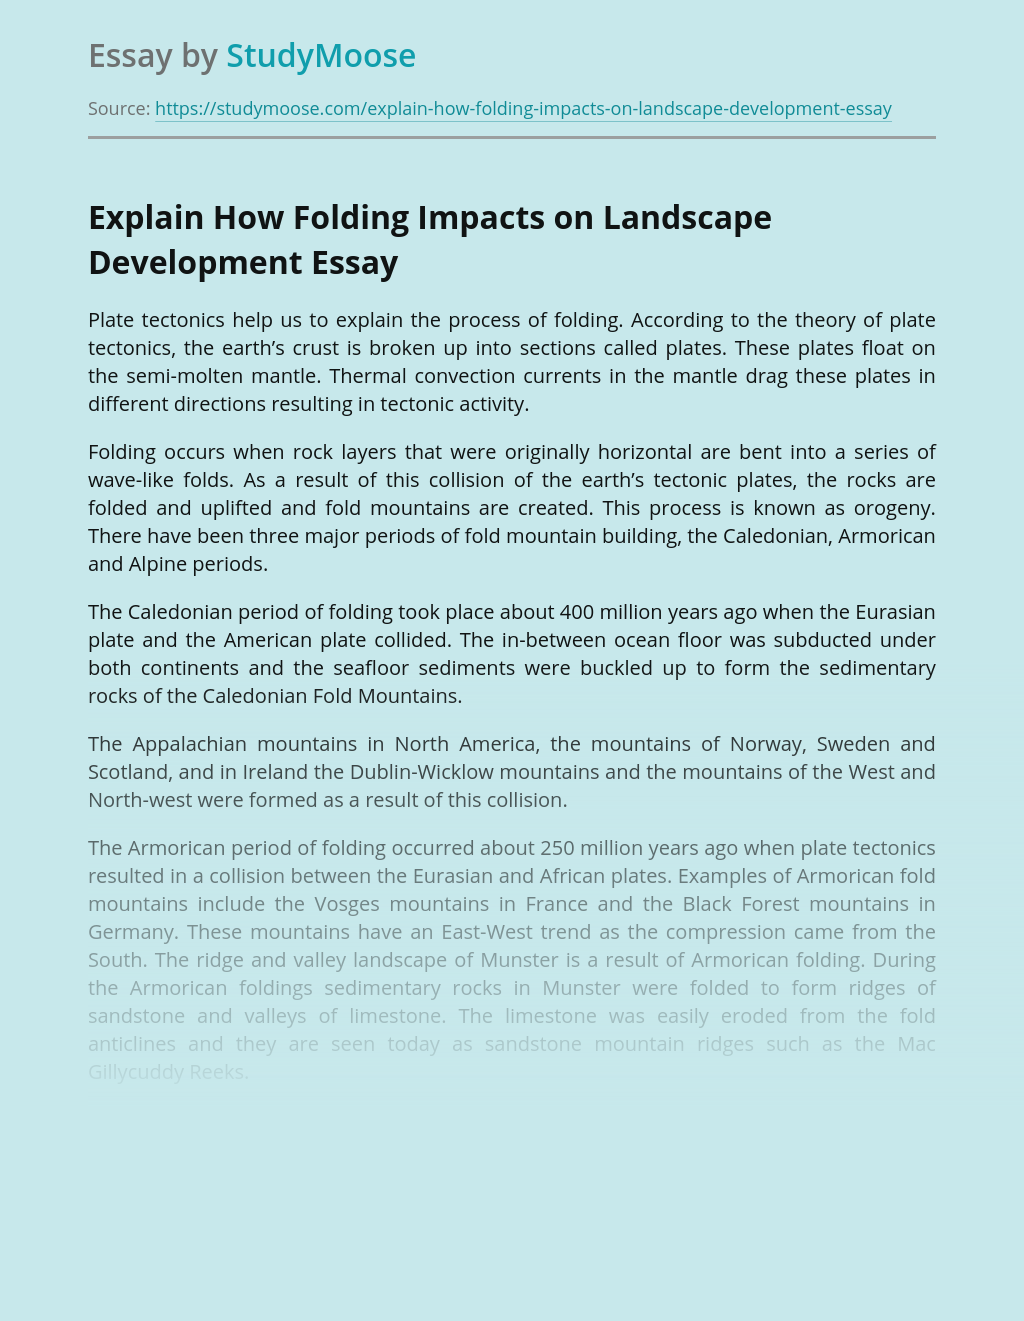 Explain How Folding Impacts on Landscape Development